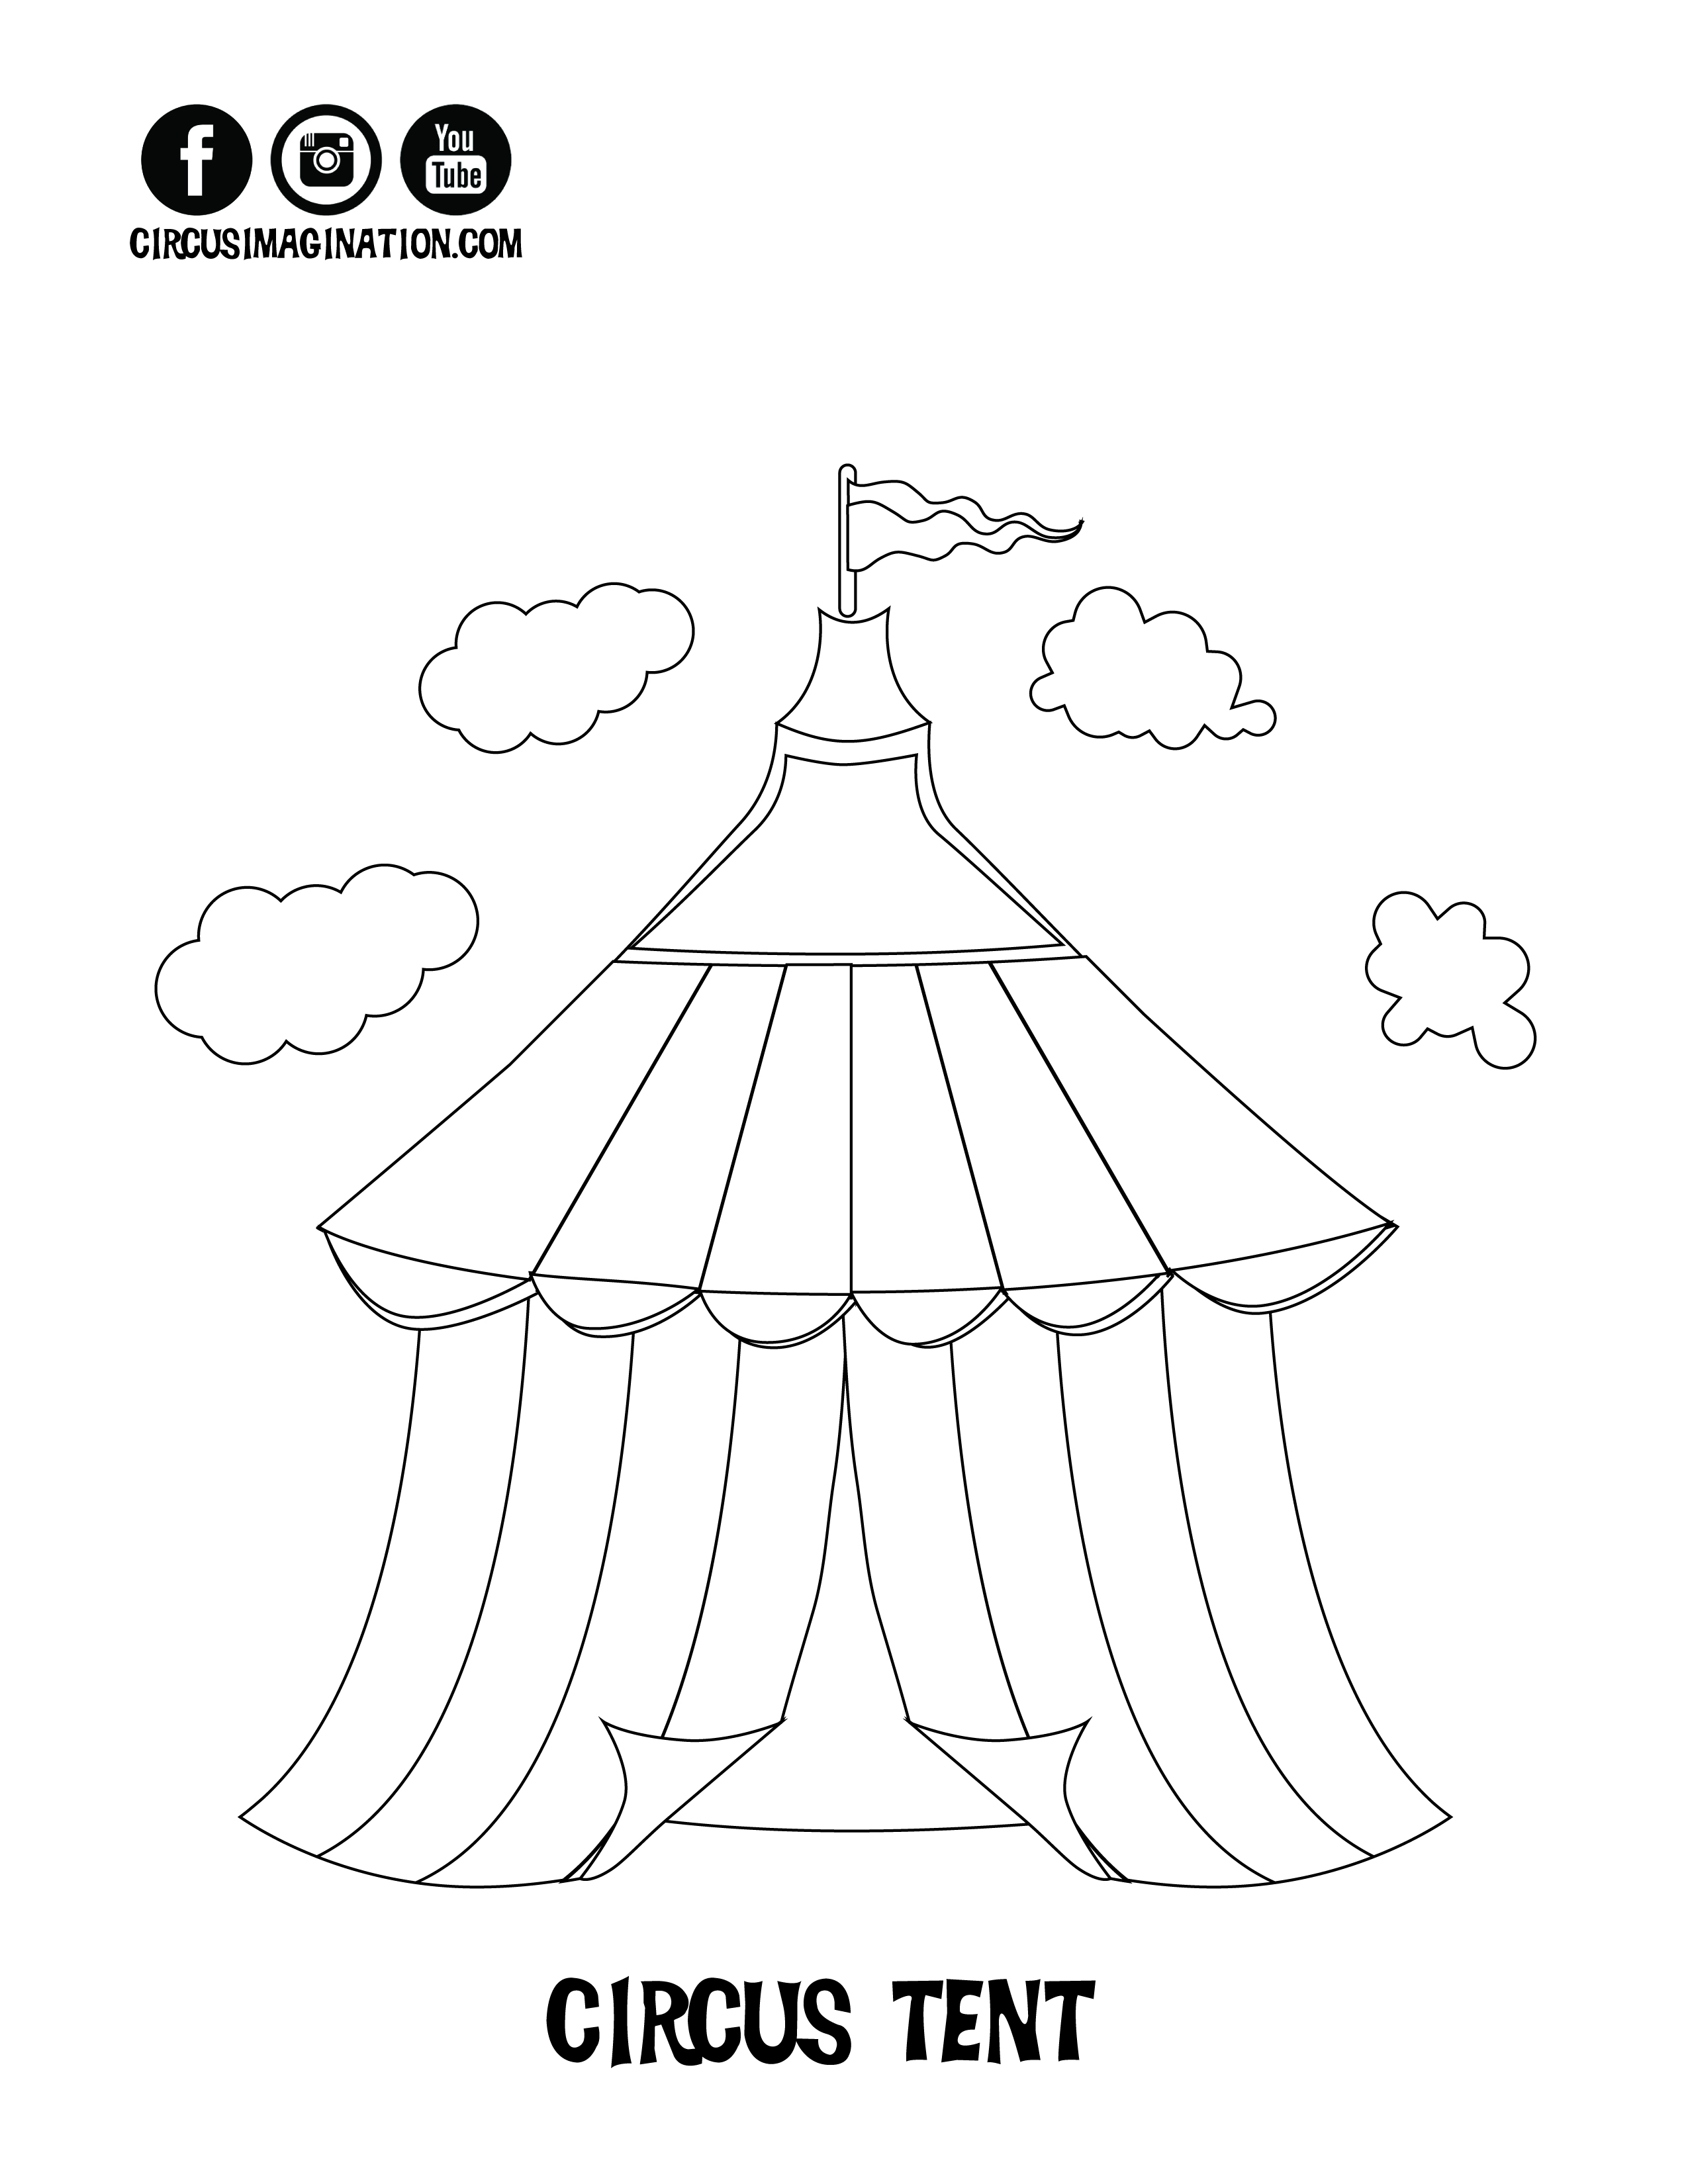 618x618 Magnificent Clown Coloring Pages With Circus And Animals Free Tent 2550x3300 Play